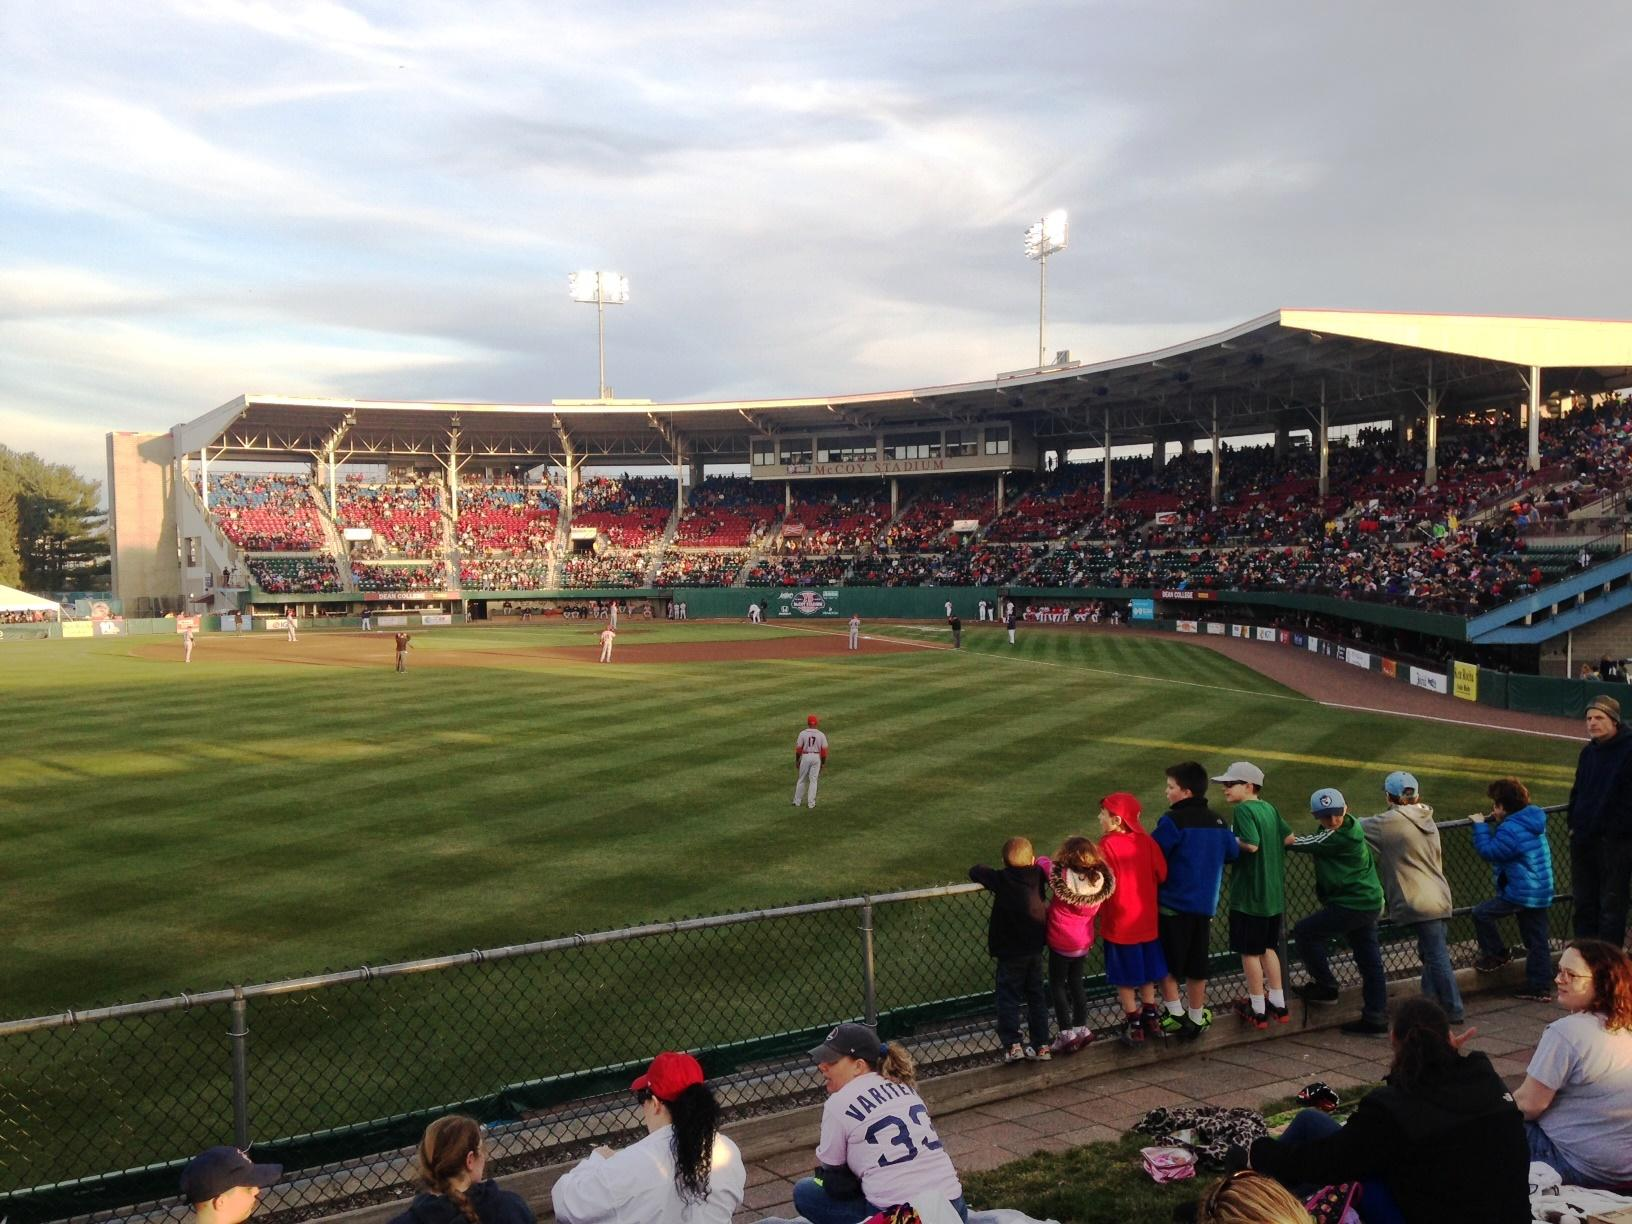 PawSox officially sign letter of intent to build new stadium in Worcester